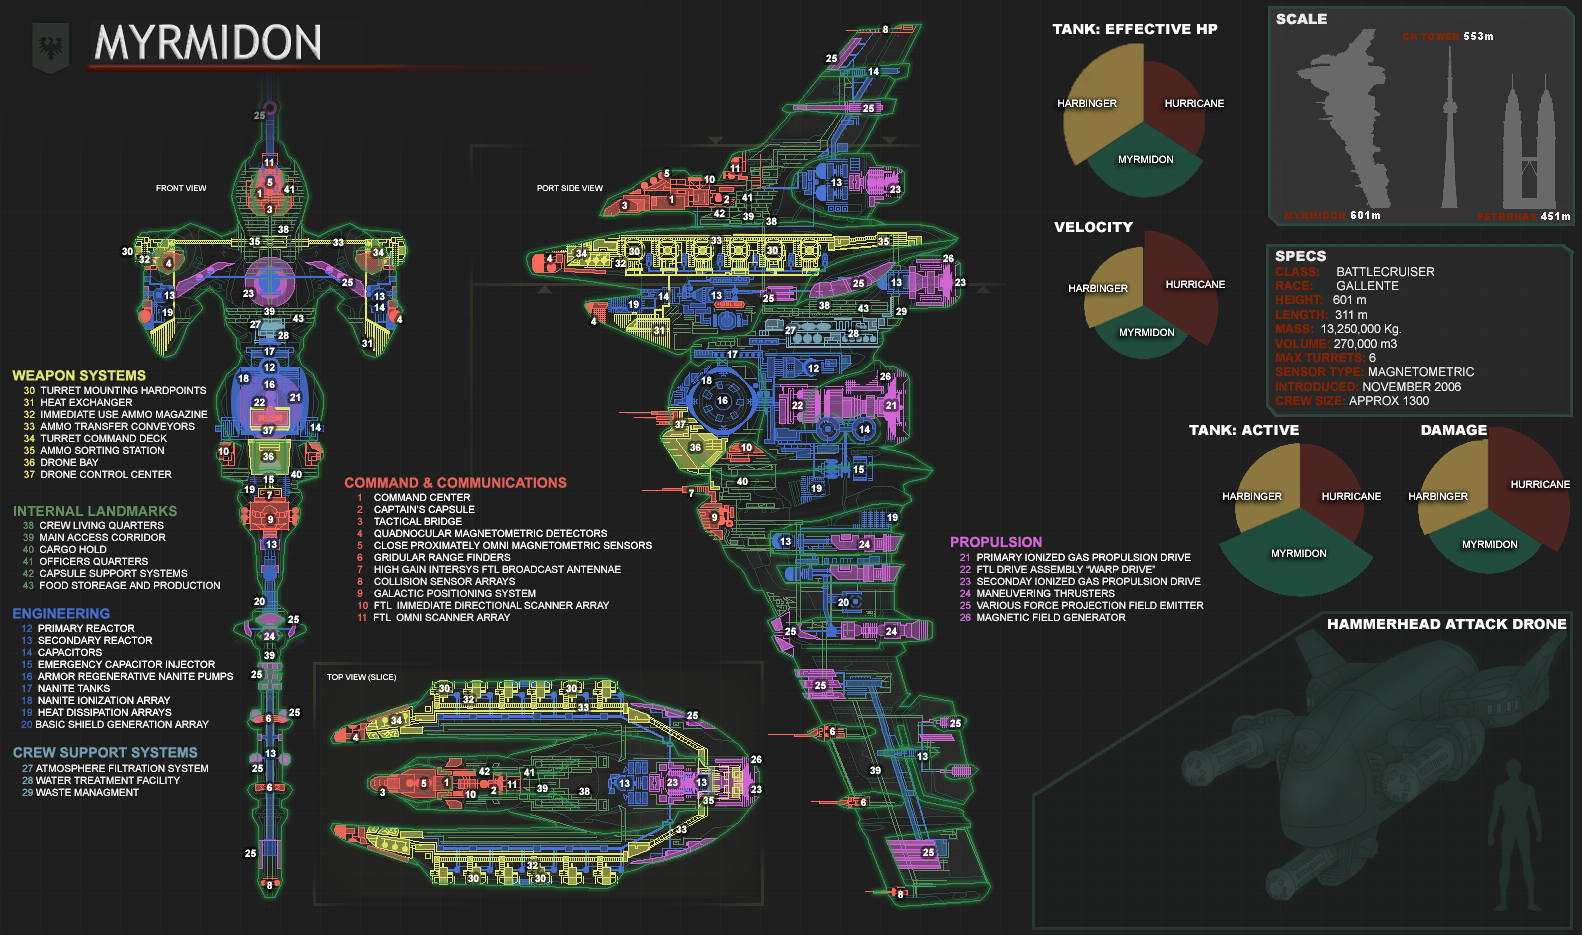 Hurricane Diagram Cutaway Shows All Sections Of The Ship